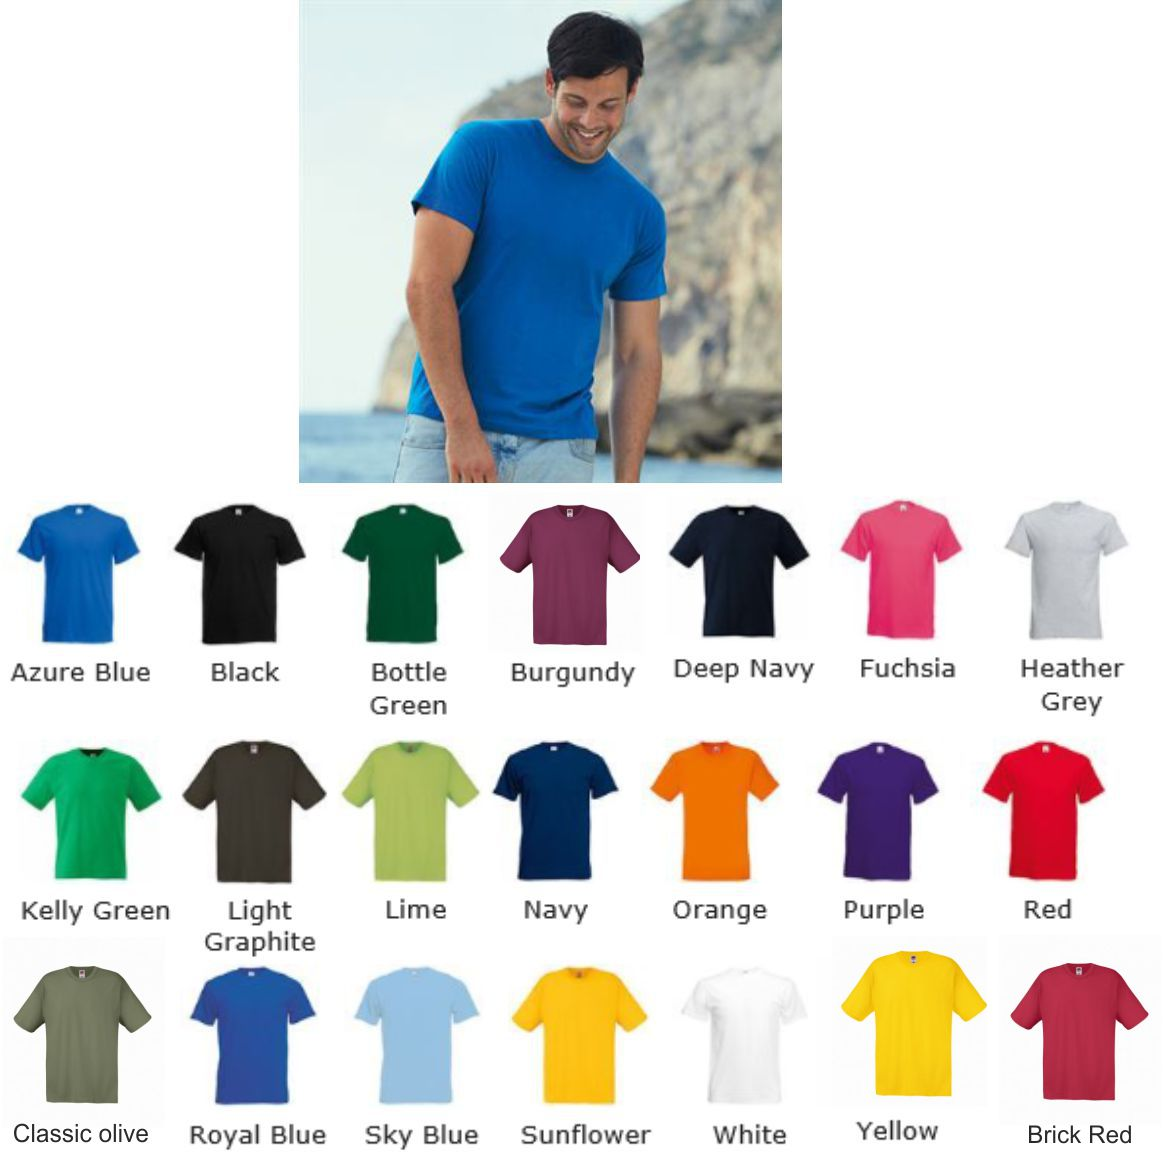 421553cd Standard Weight Tee Shirts : Ark Trading, Corporate Clothing ...